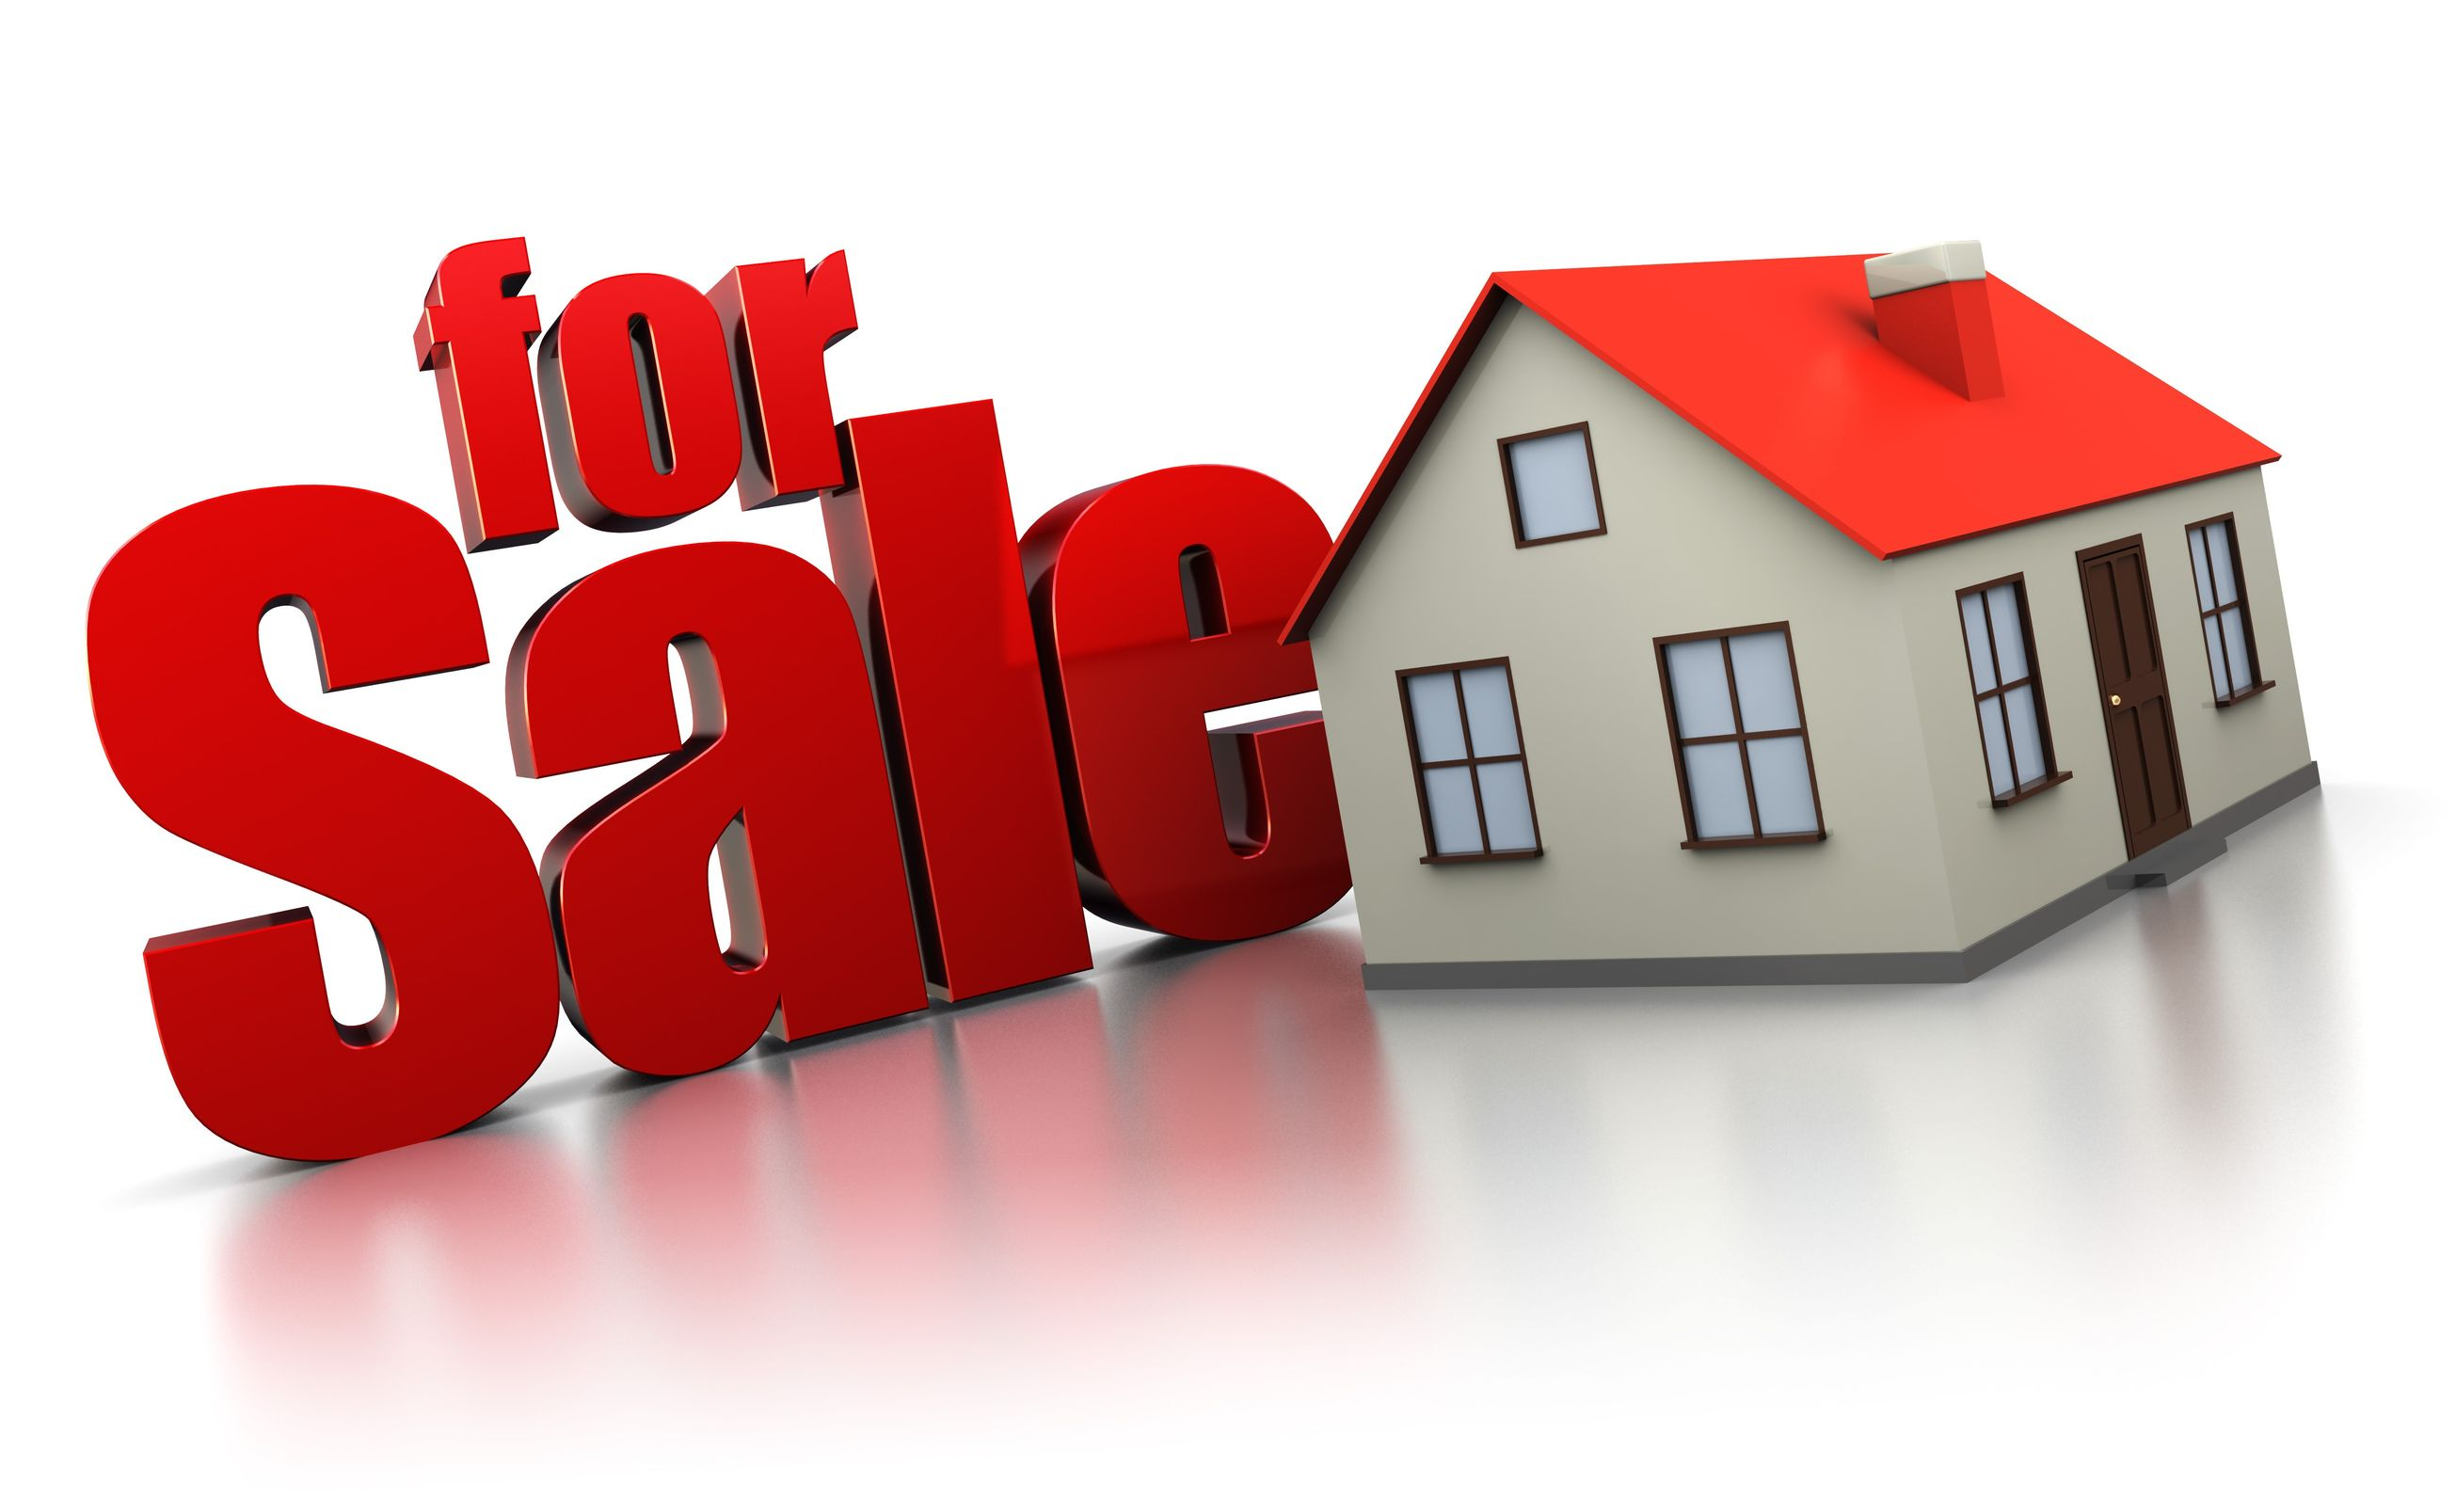 The Psychology Of Pricing A Real Estate Property